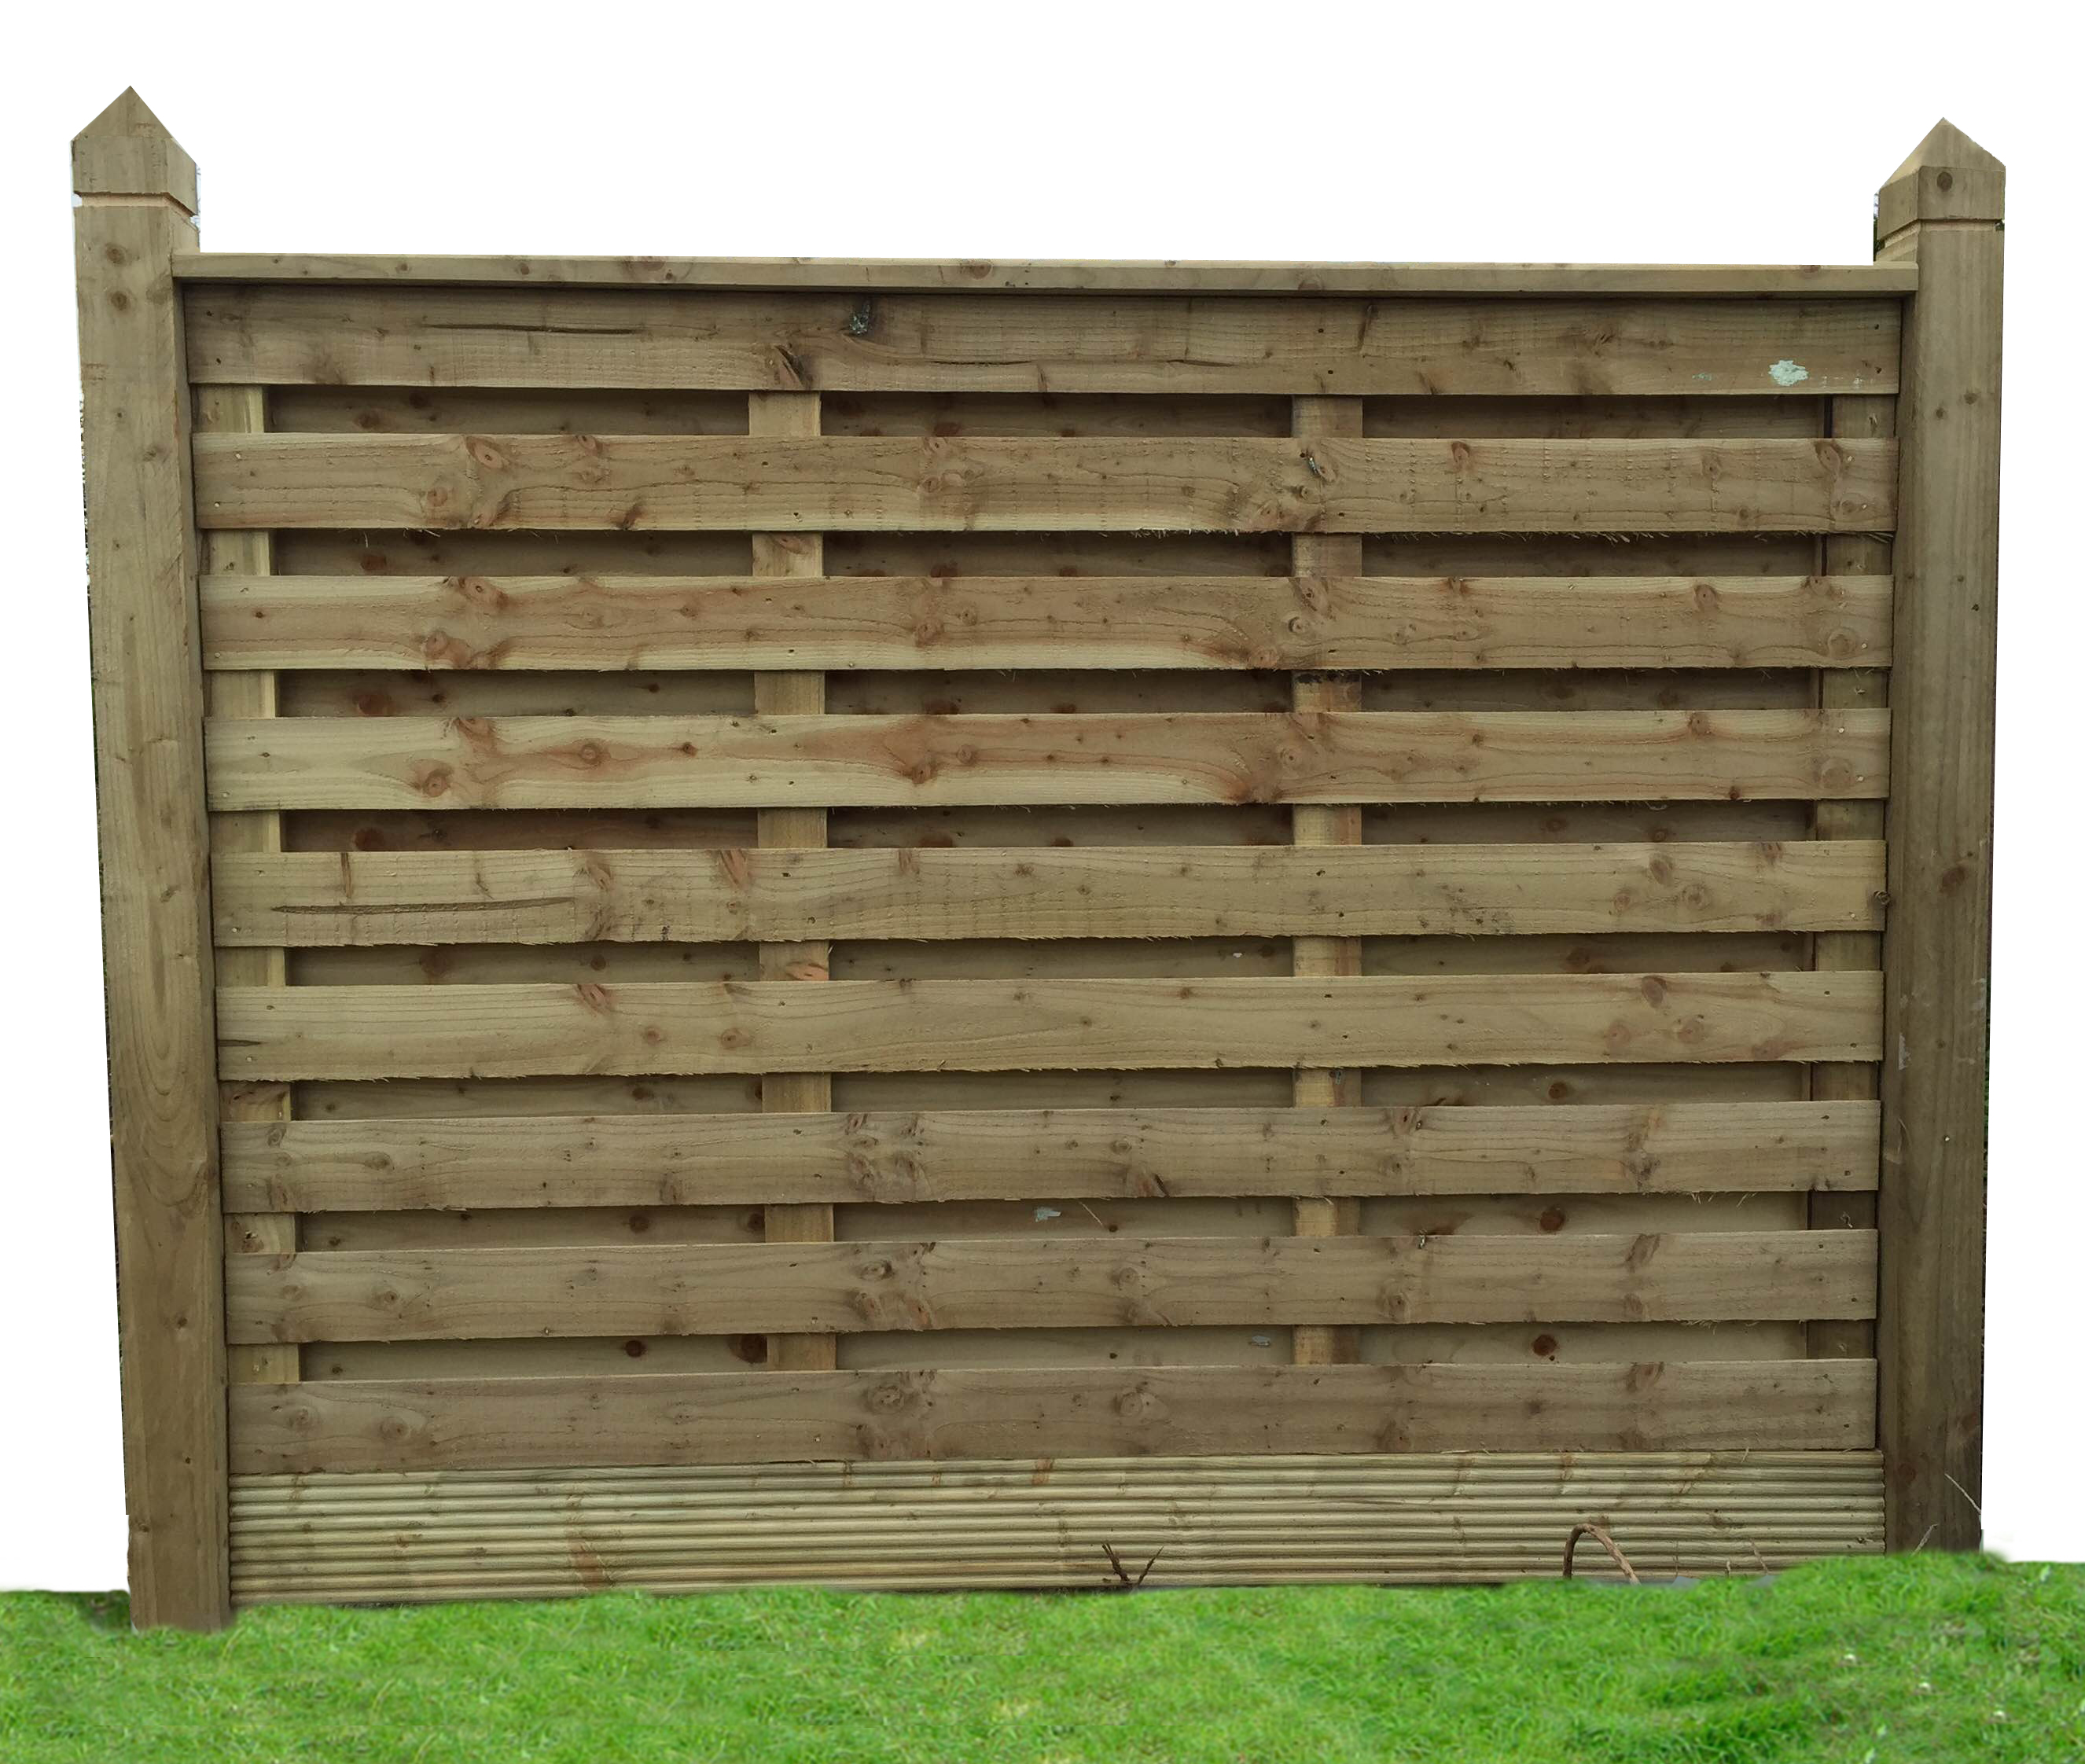 Fencing Ireland Dublin Wicklow Wexford Sheds Fencing